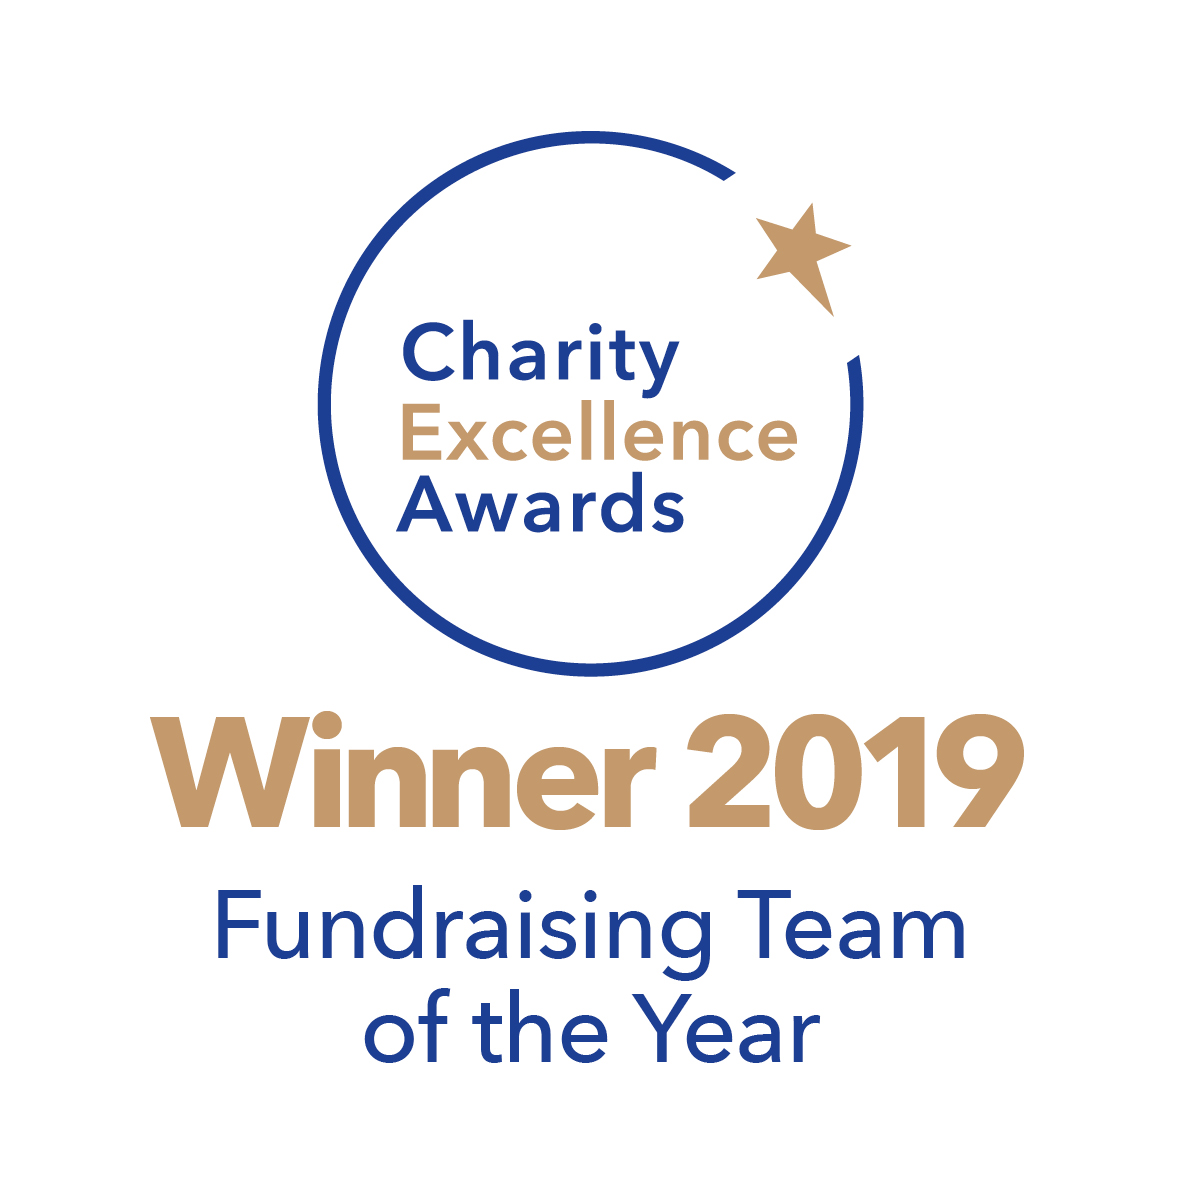 Charity Awards Winner_FUNDRAISING.jpg